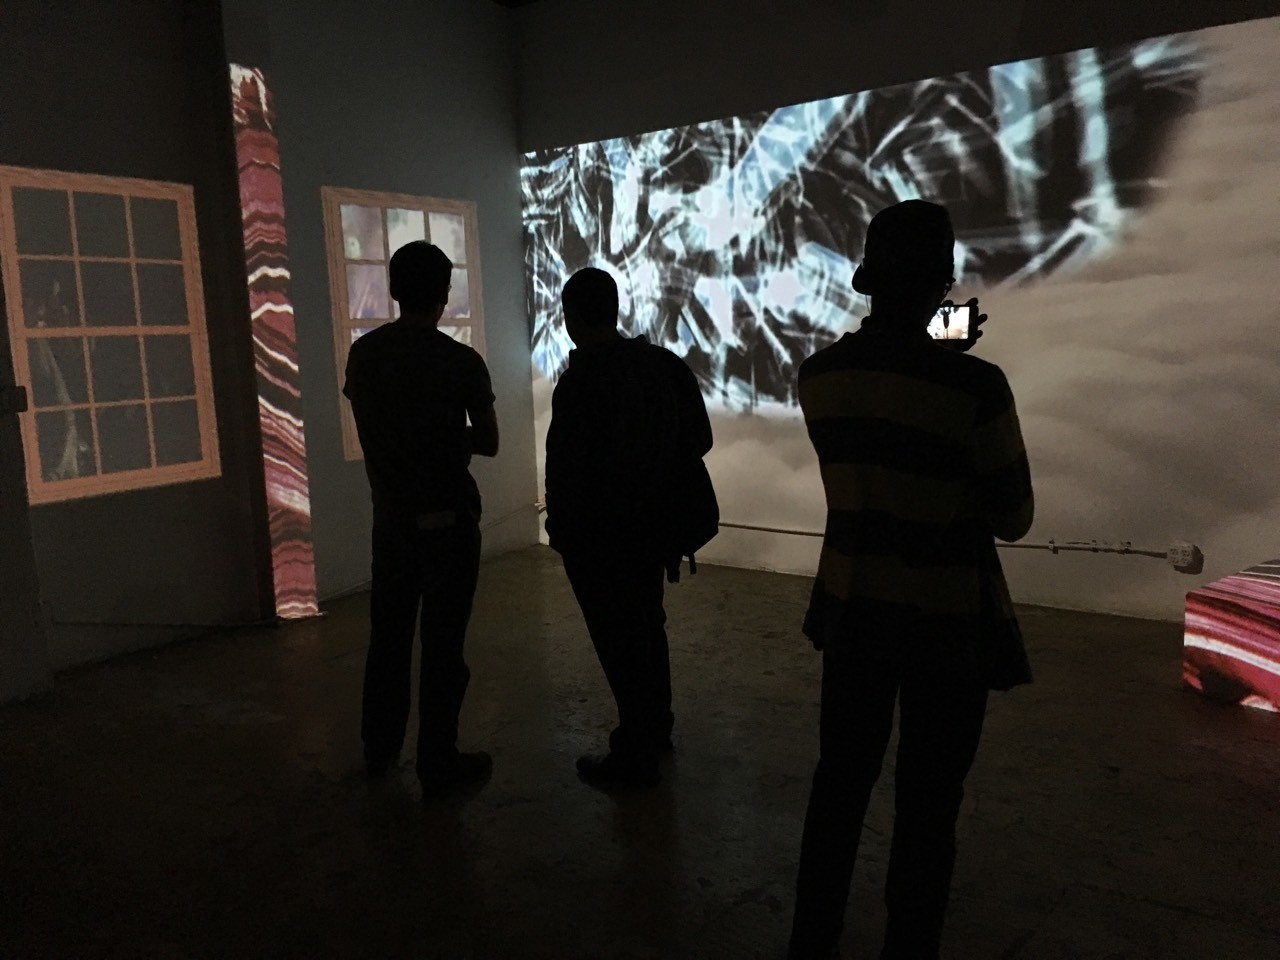 Bodies Take To Light video installation at Rabbit Hole gallery in Brooklyn by Dan O'Neil and Jimi Pantalon